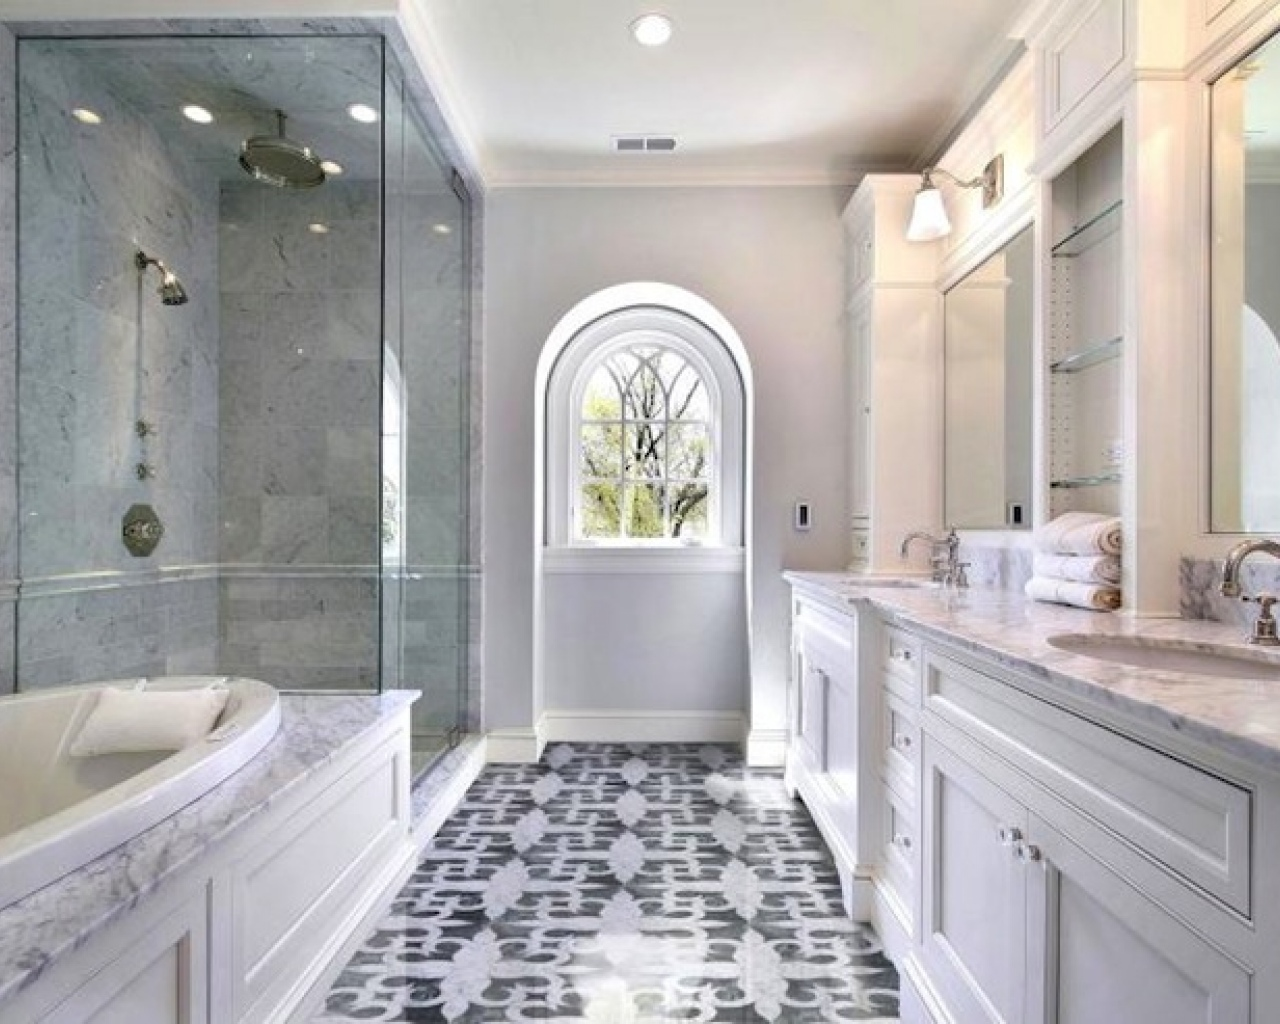 25 Amazing Italian Bathroom Tile Designs Ideas And Pictures